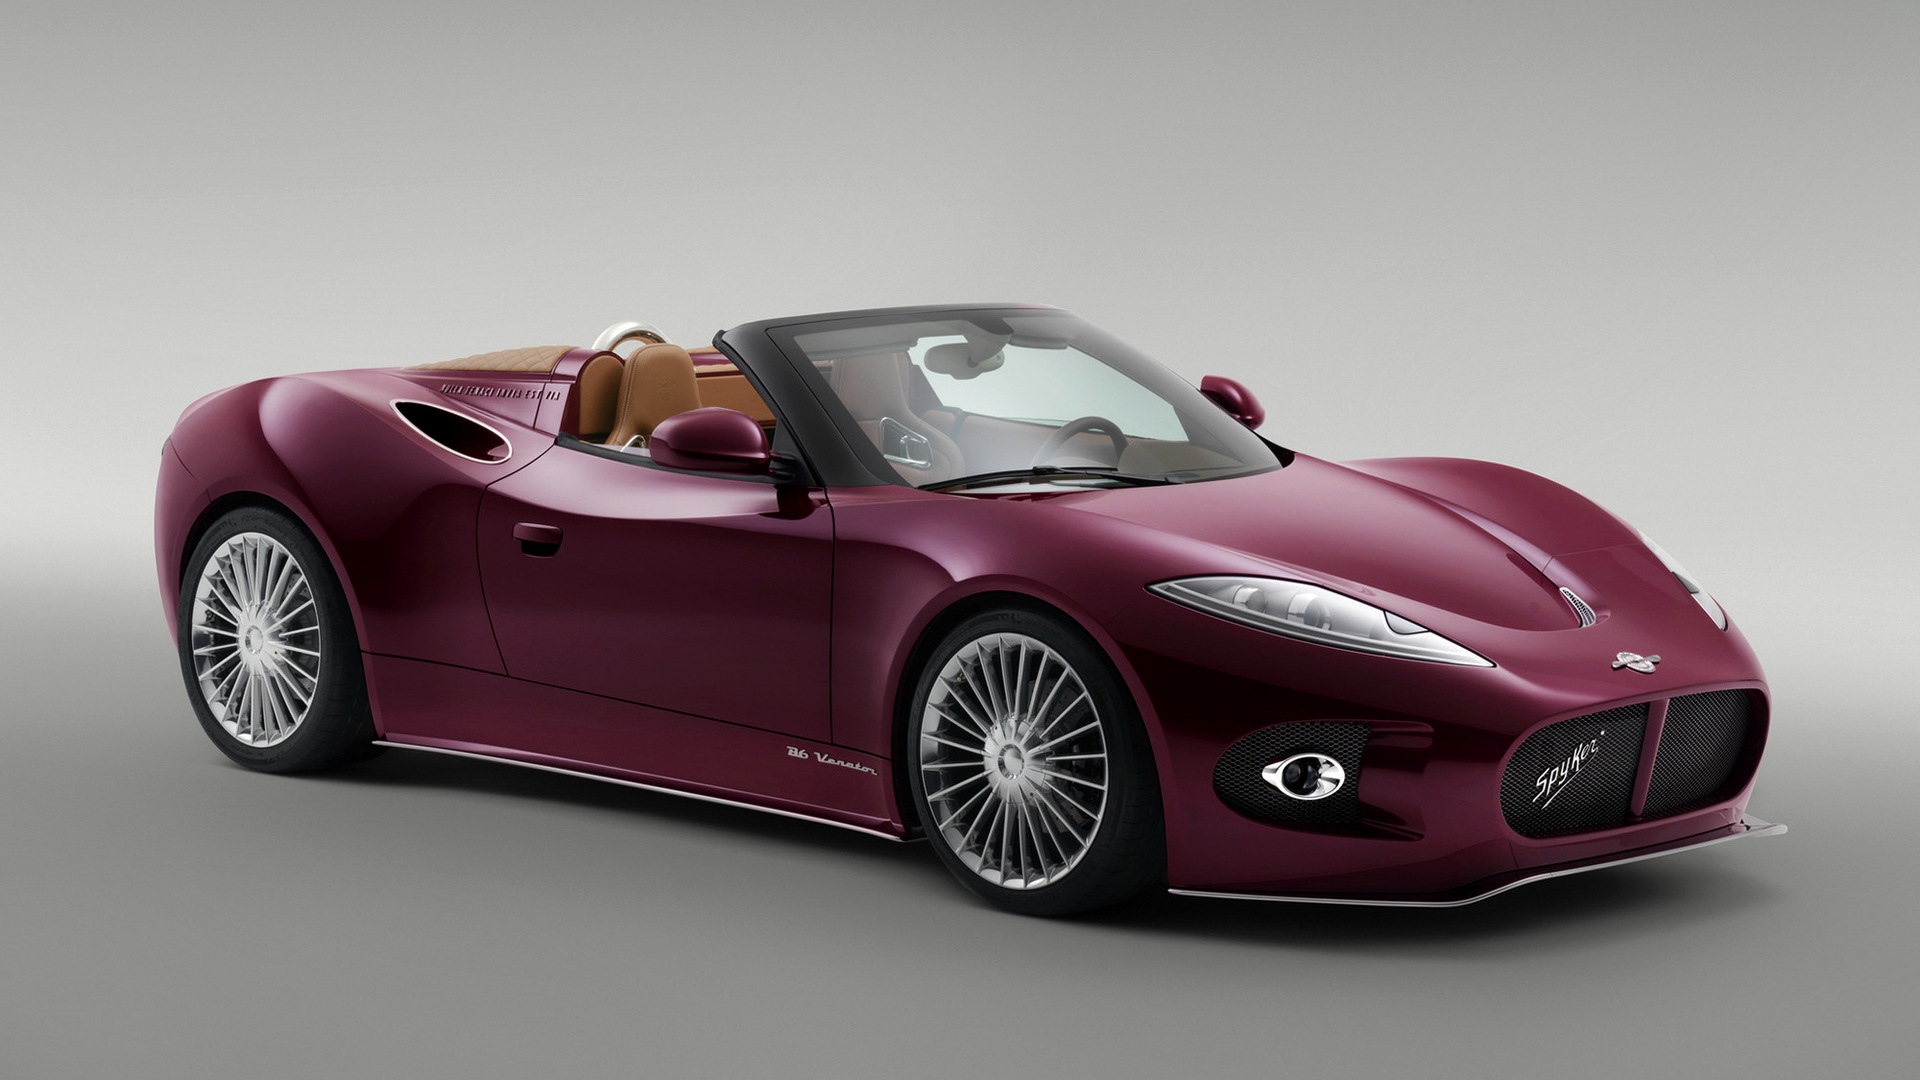 2013 Spyker B6 Venator Concept photo - 3